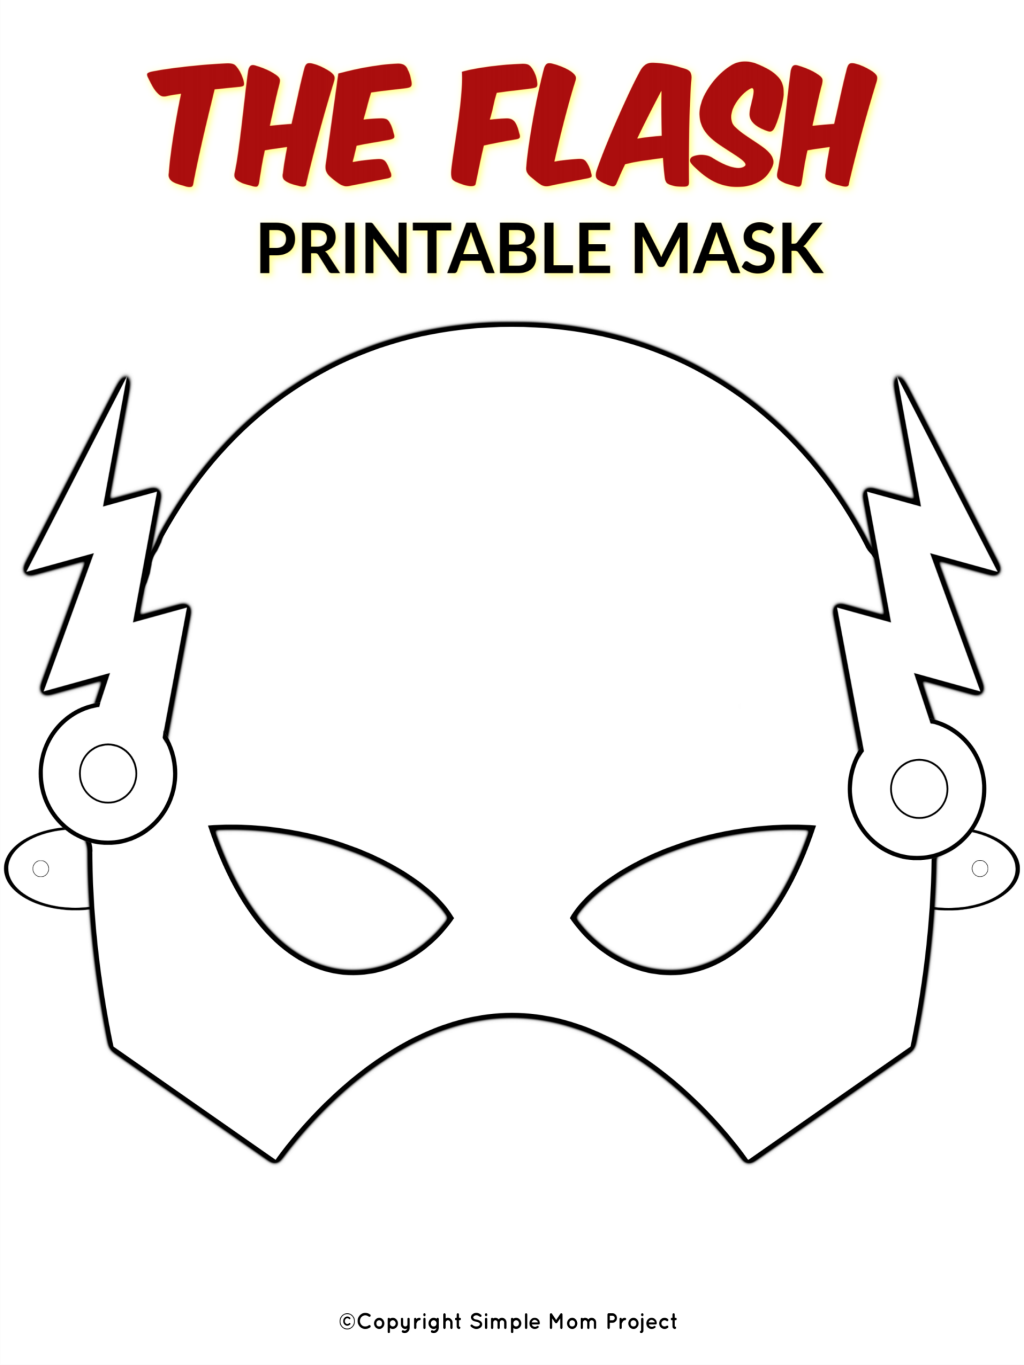 Free Printable The Flash Superhero Mask Template